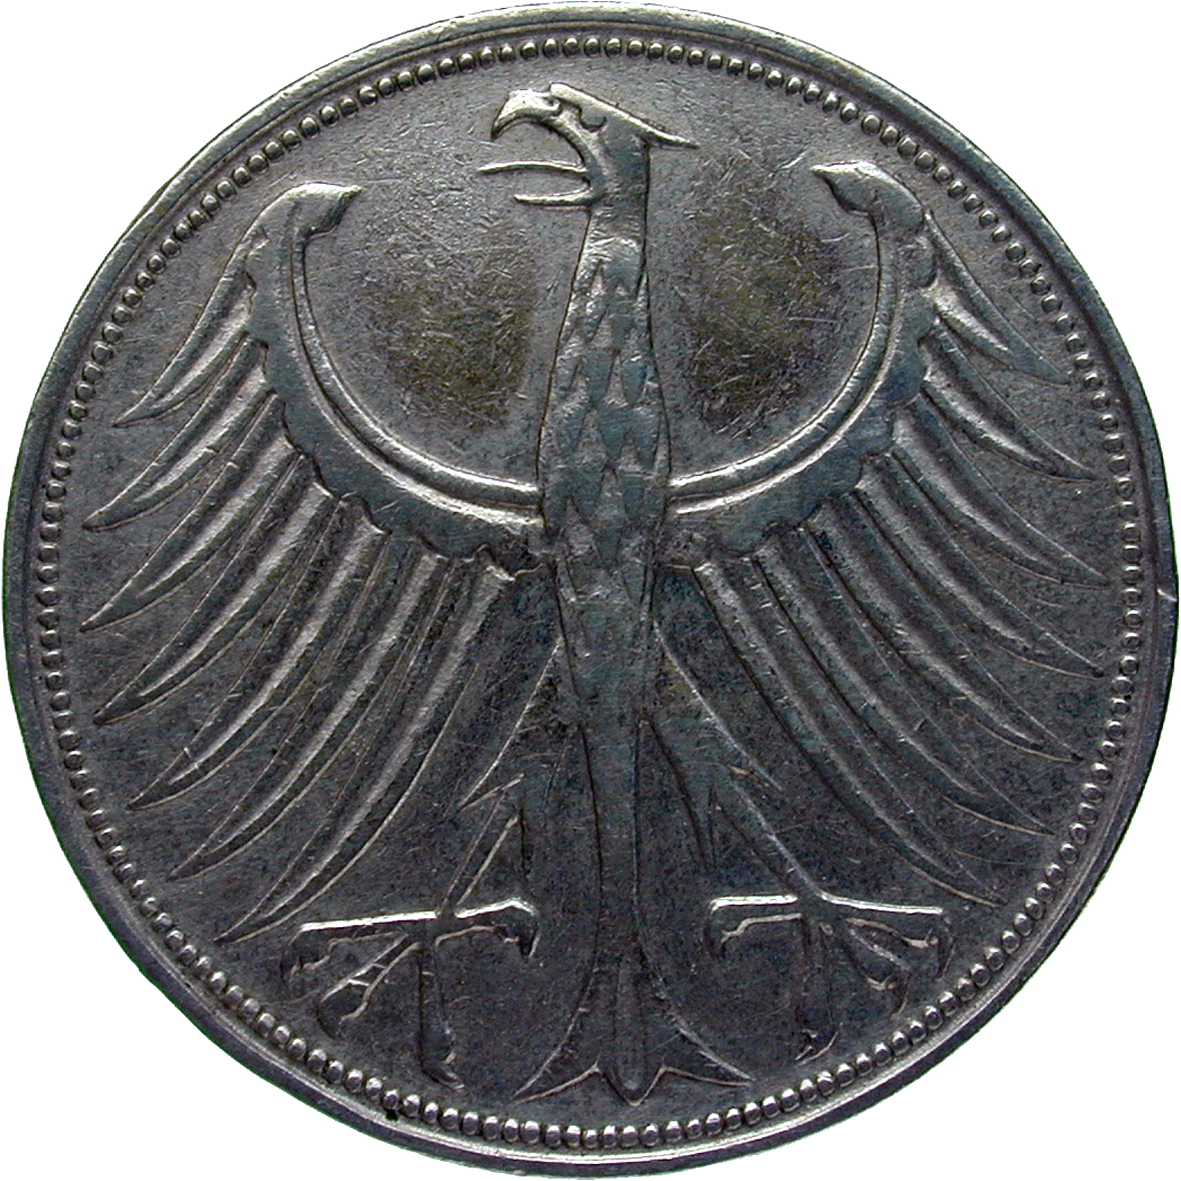 Federal Republic of Germany, 5 Deutsche Mark 1951 (reverse)